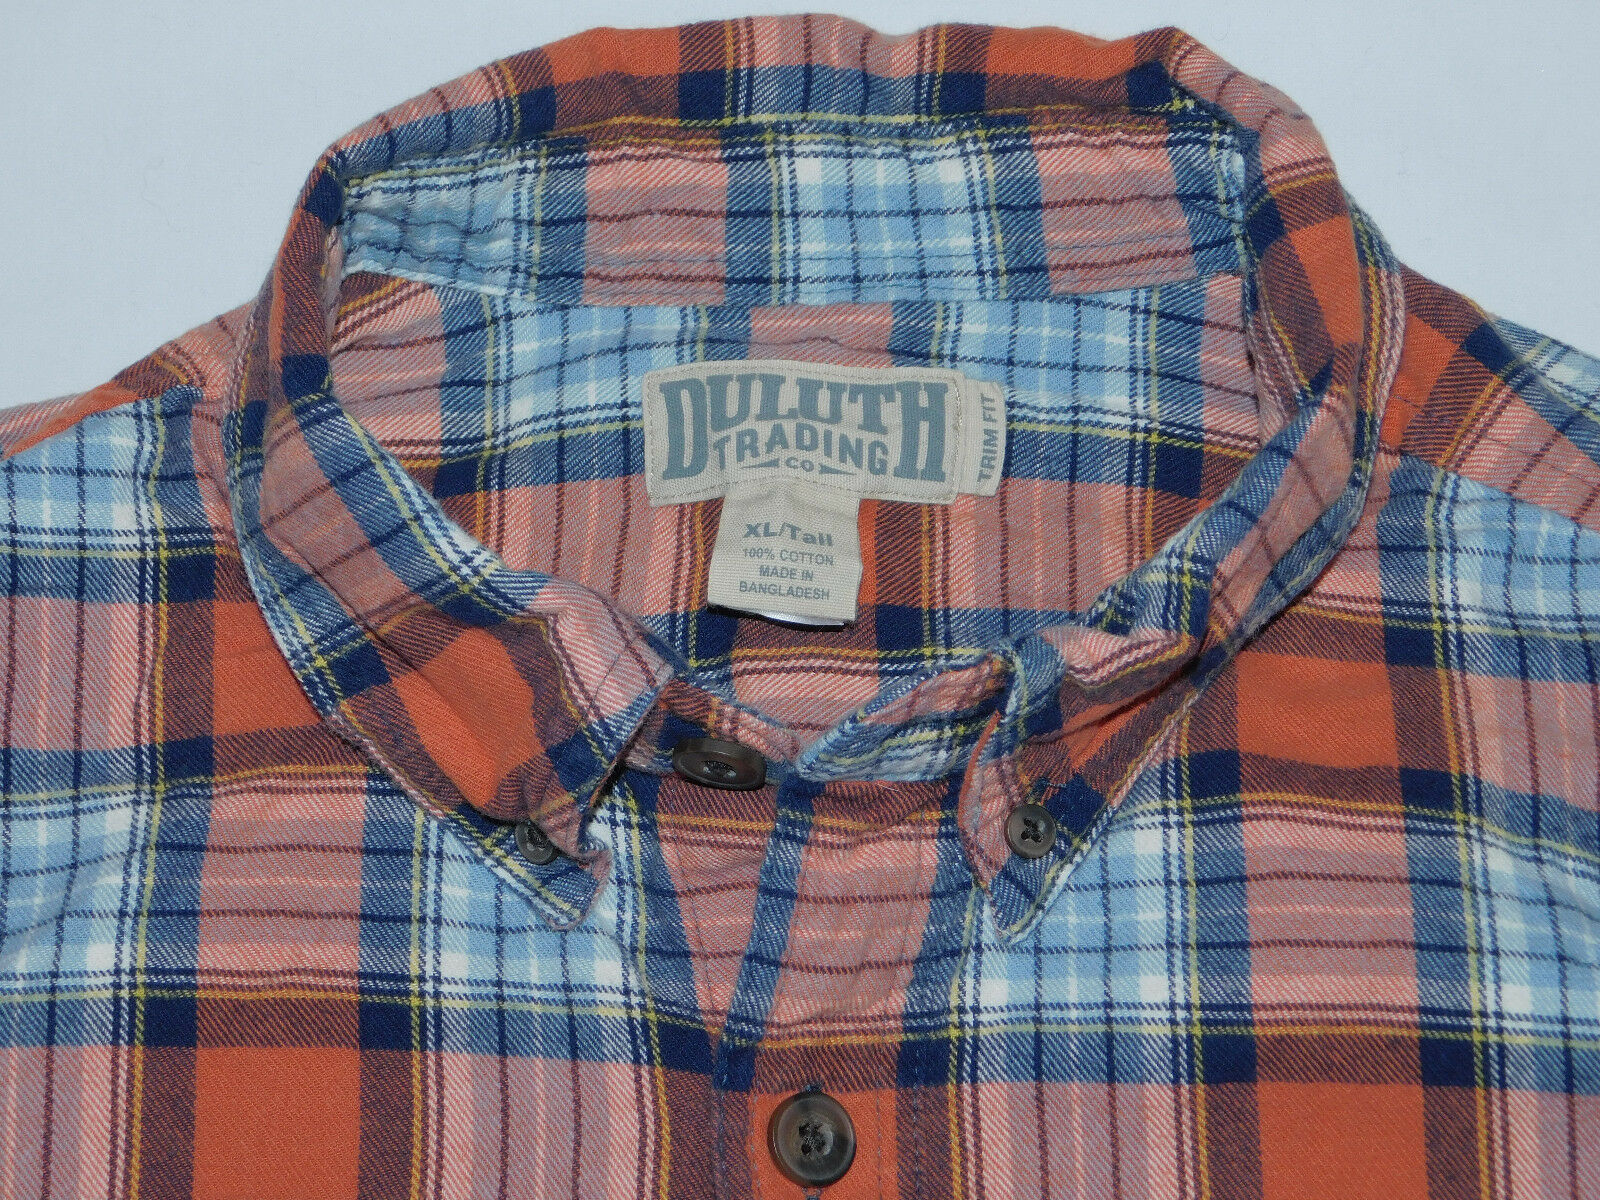 DULUTH TRADING CO FLANNEL SHIRT FREE SWINGIN TRIM FIT NAVY ORN MEN'S XLT XL TALL